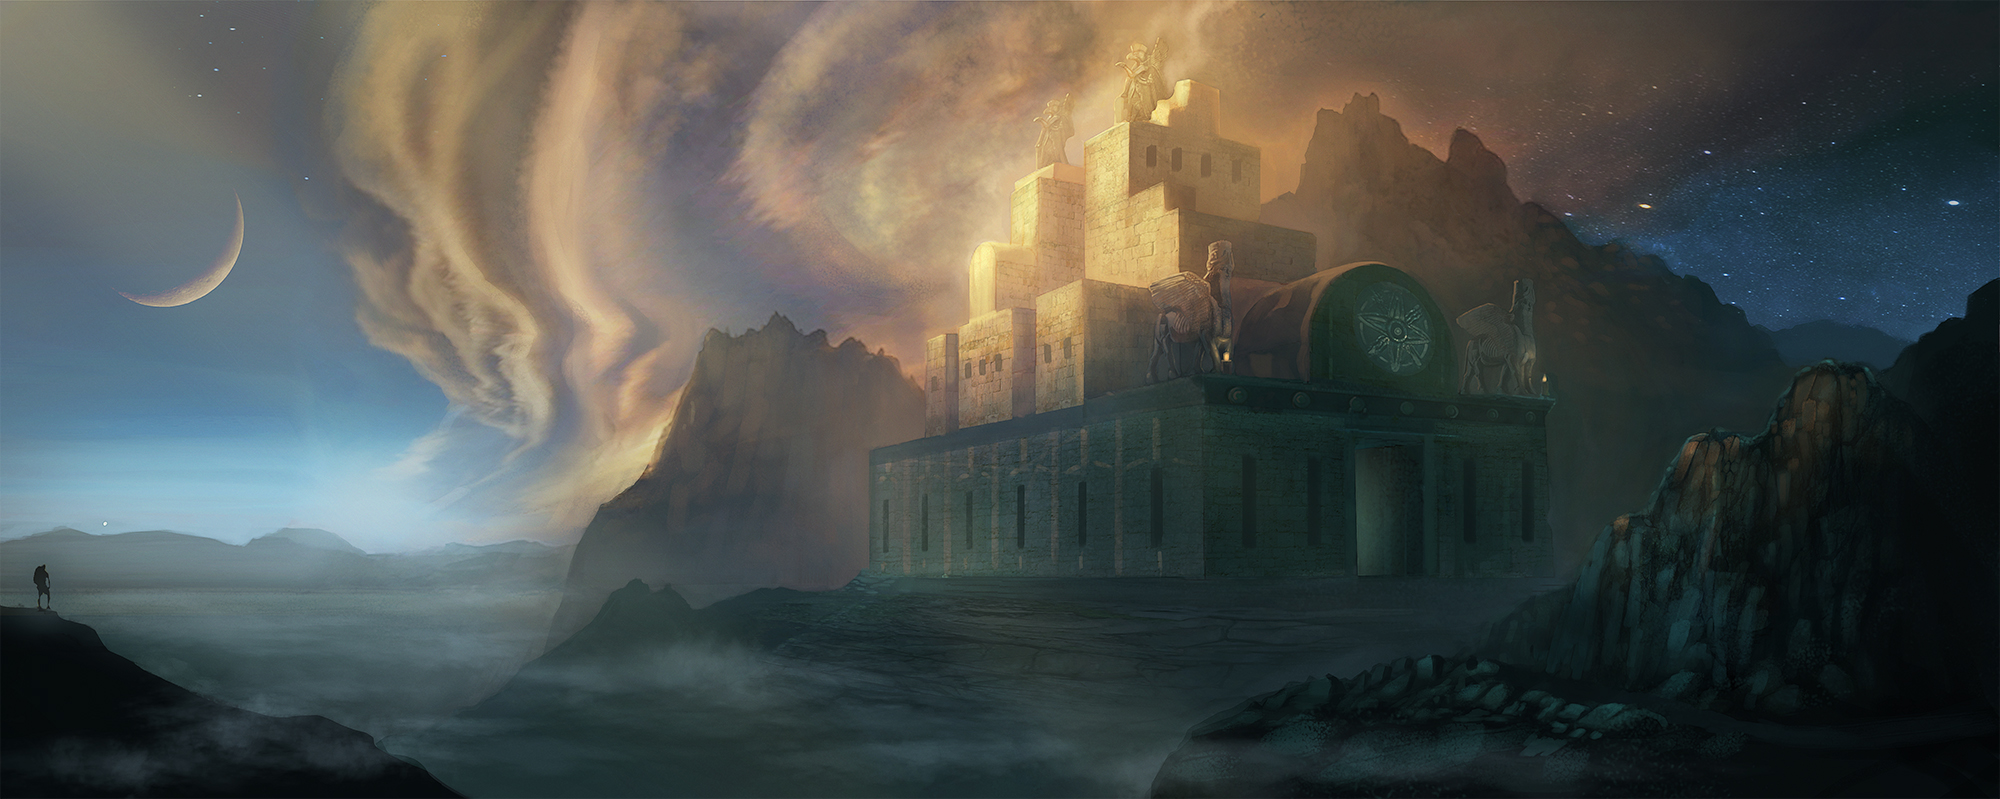 The Sun Temple by verbalhologram33